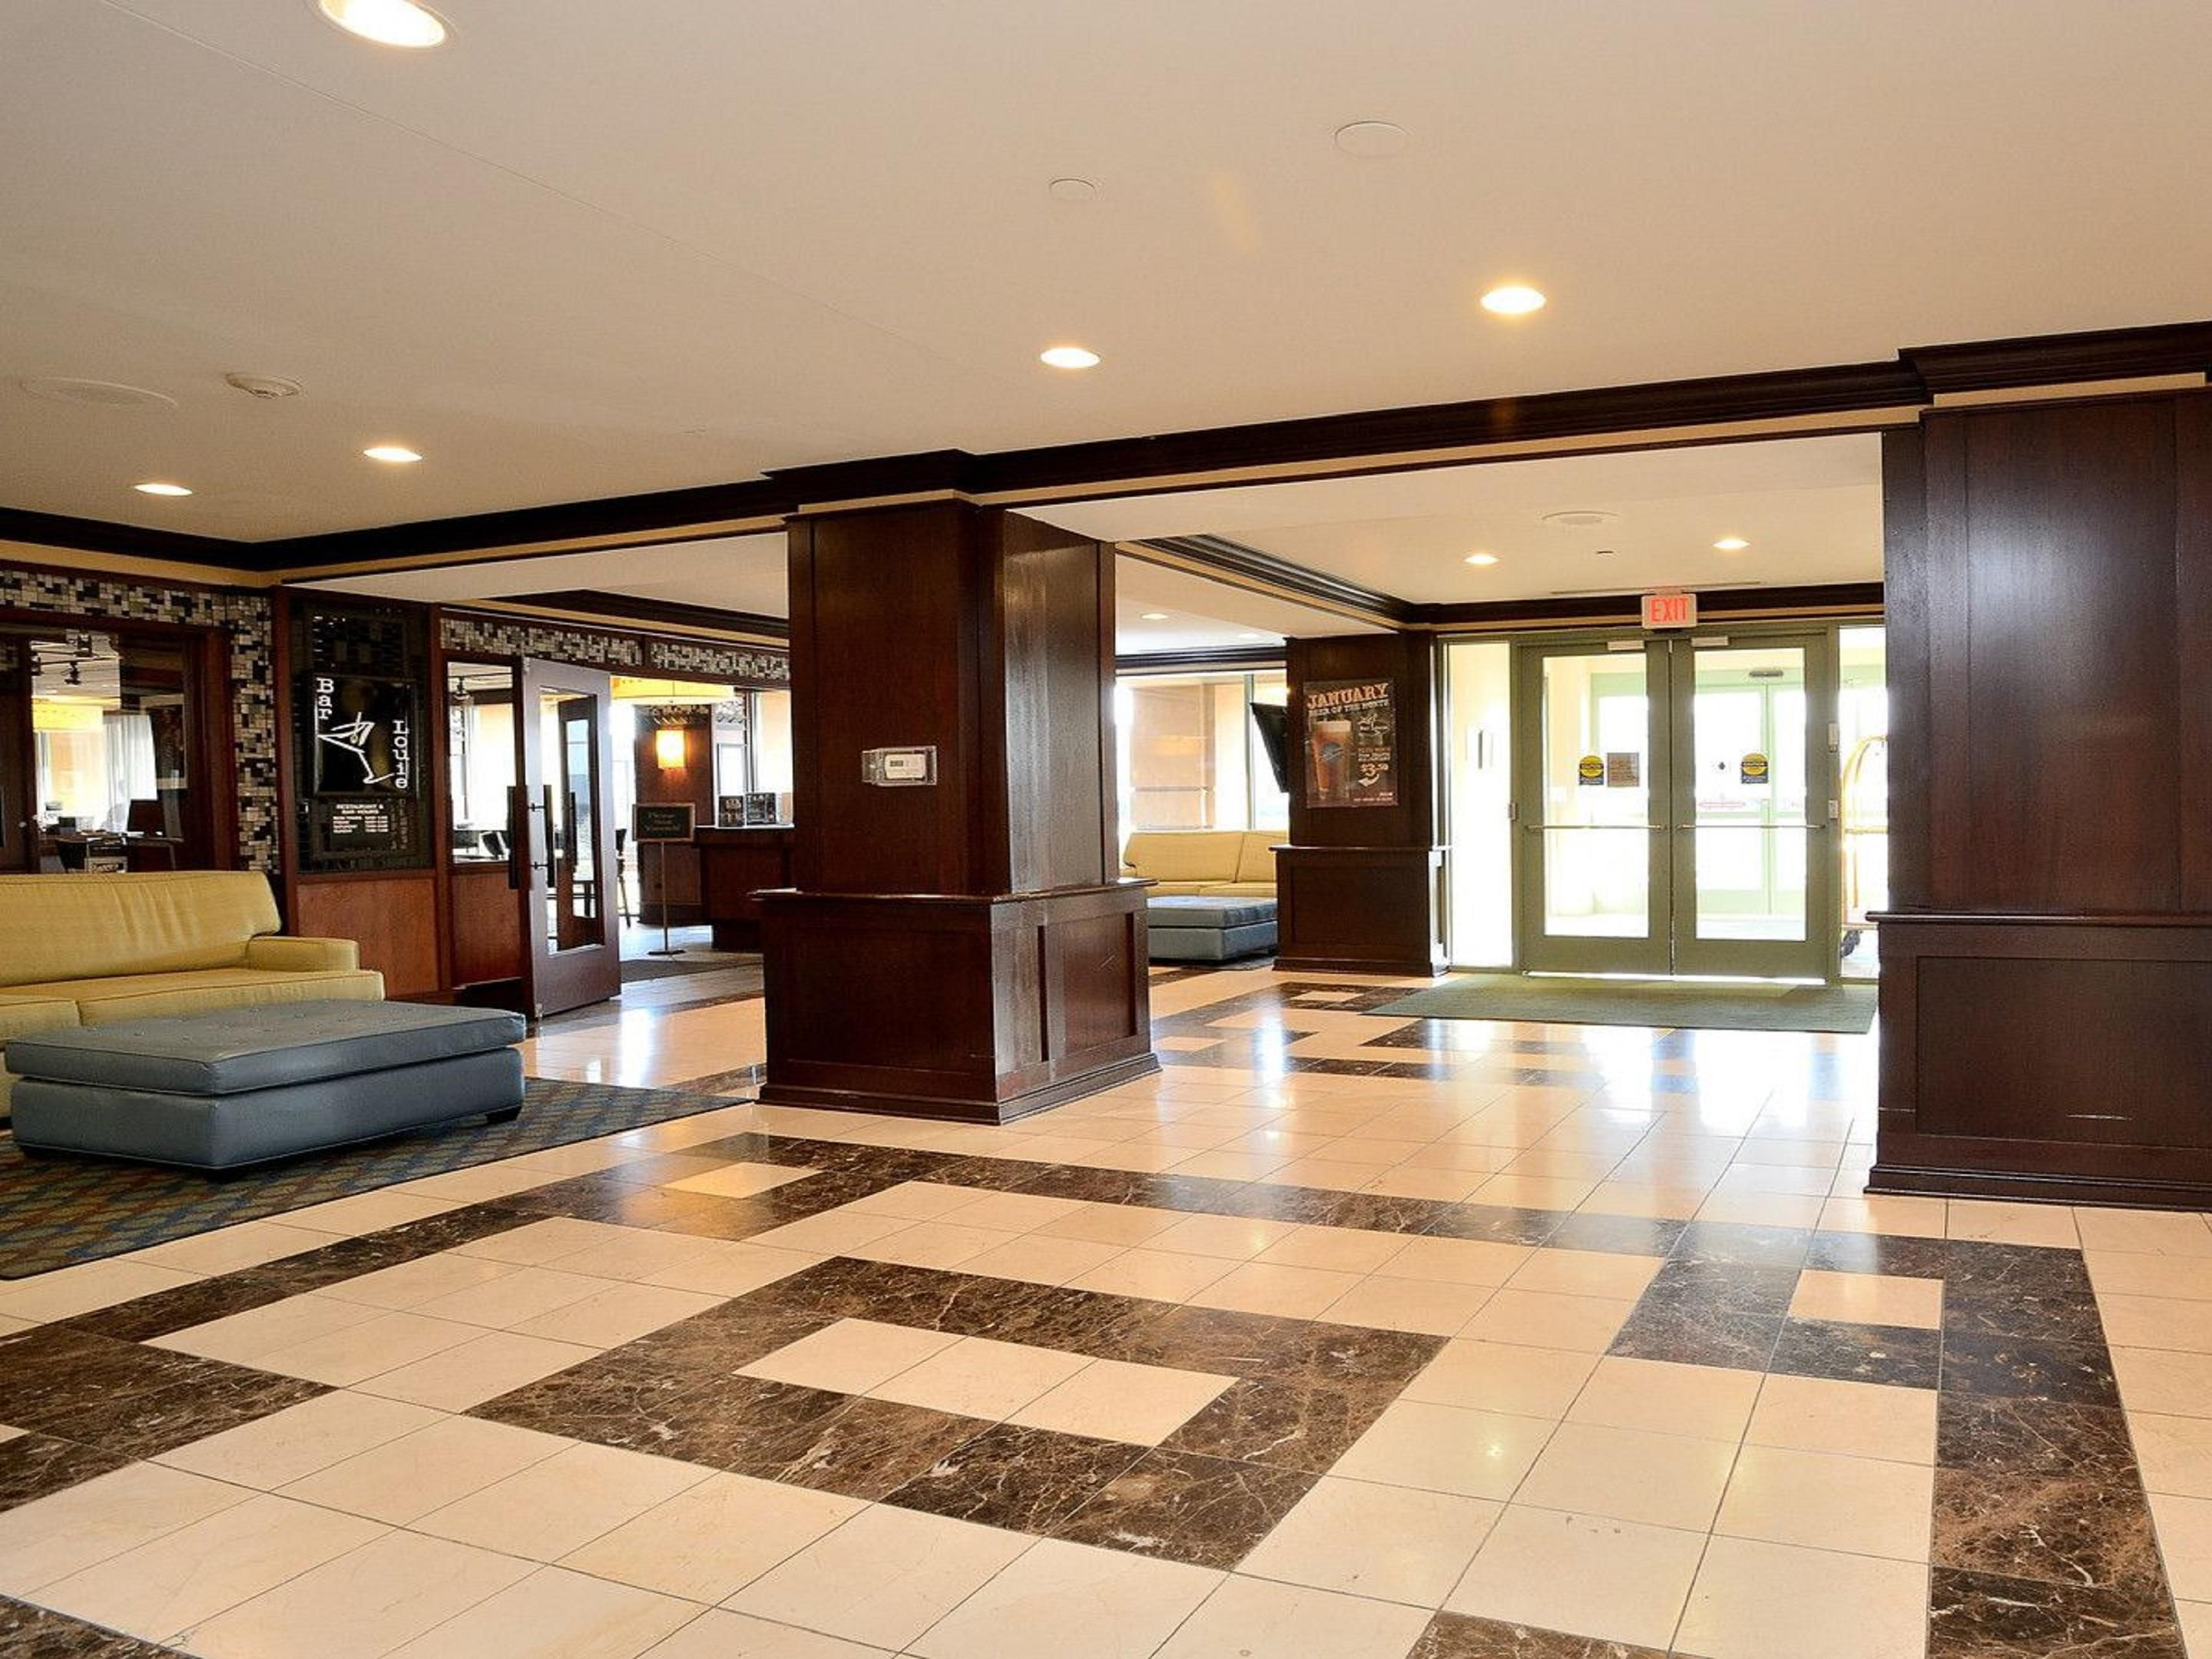 Holiday Inn Oak Brook Terrace, Main Lobby